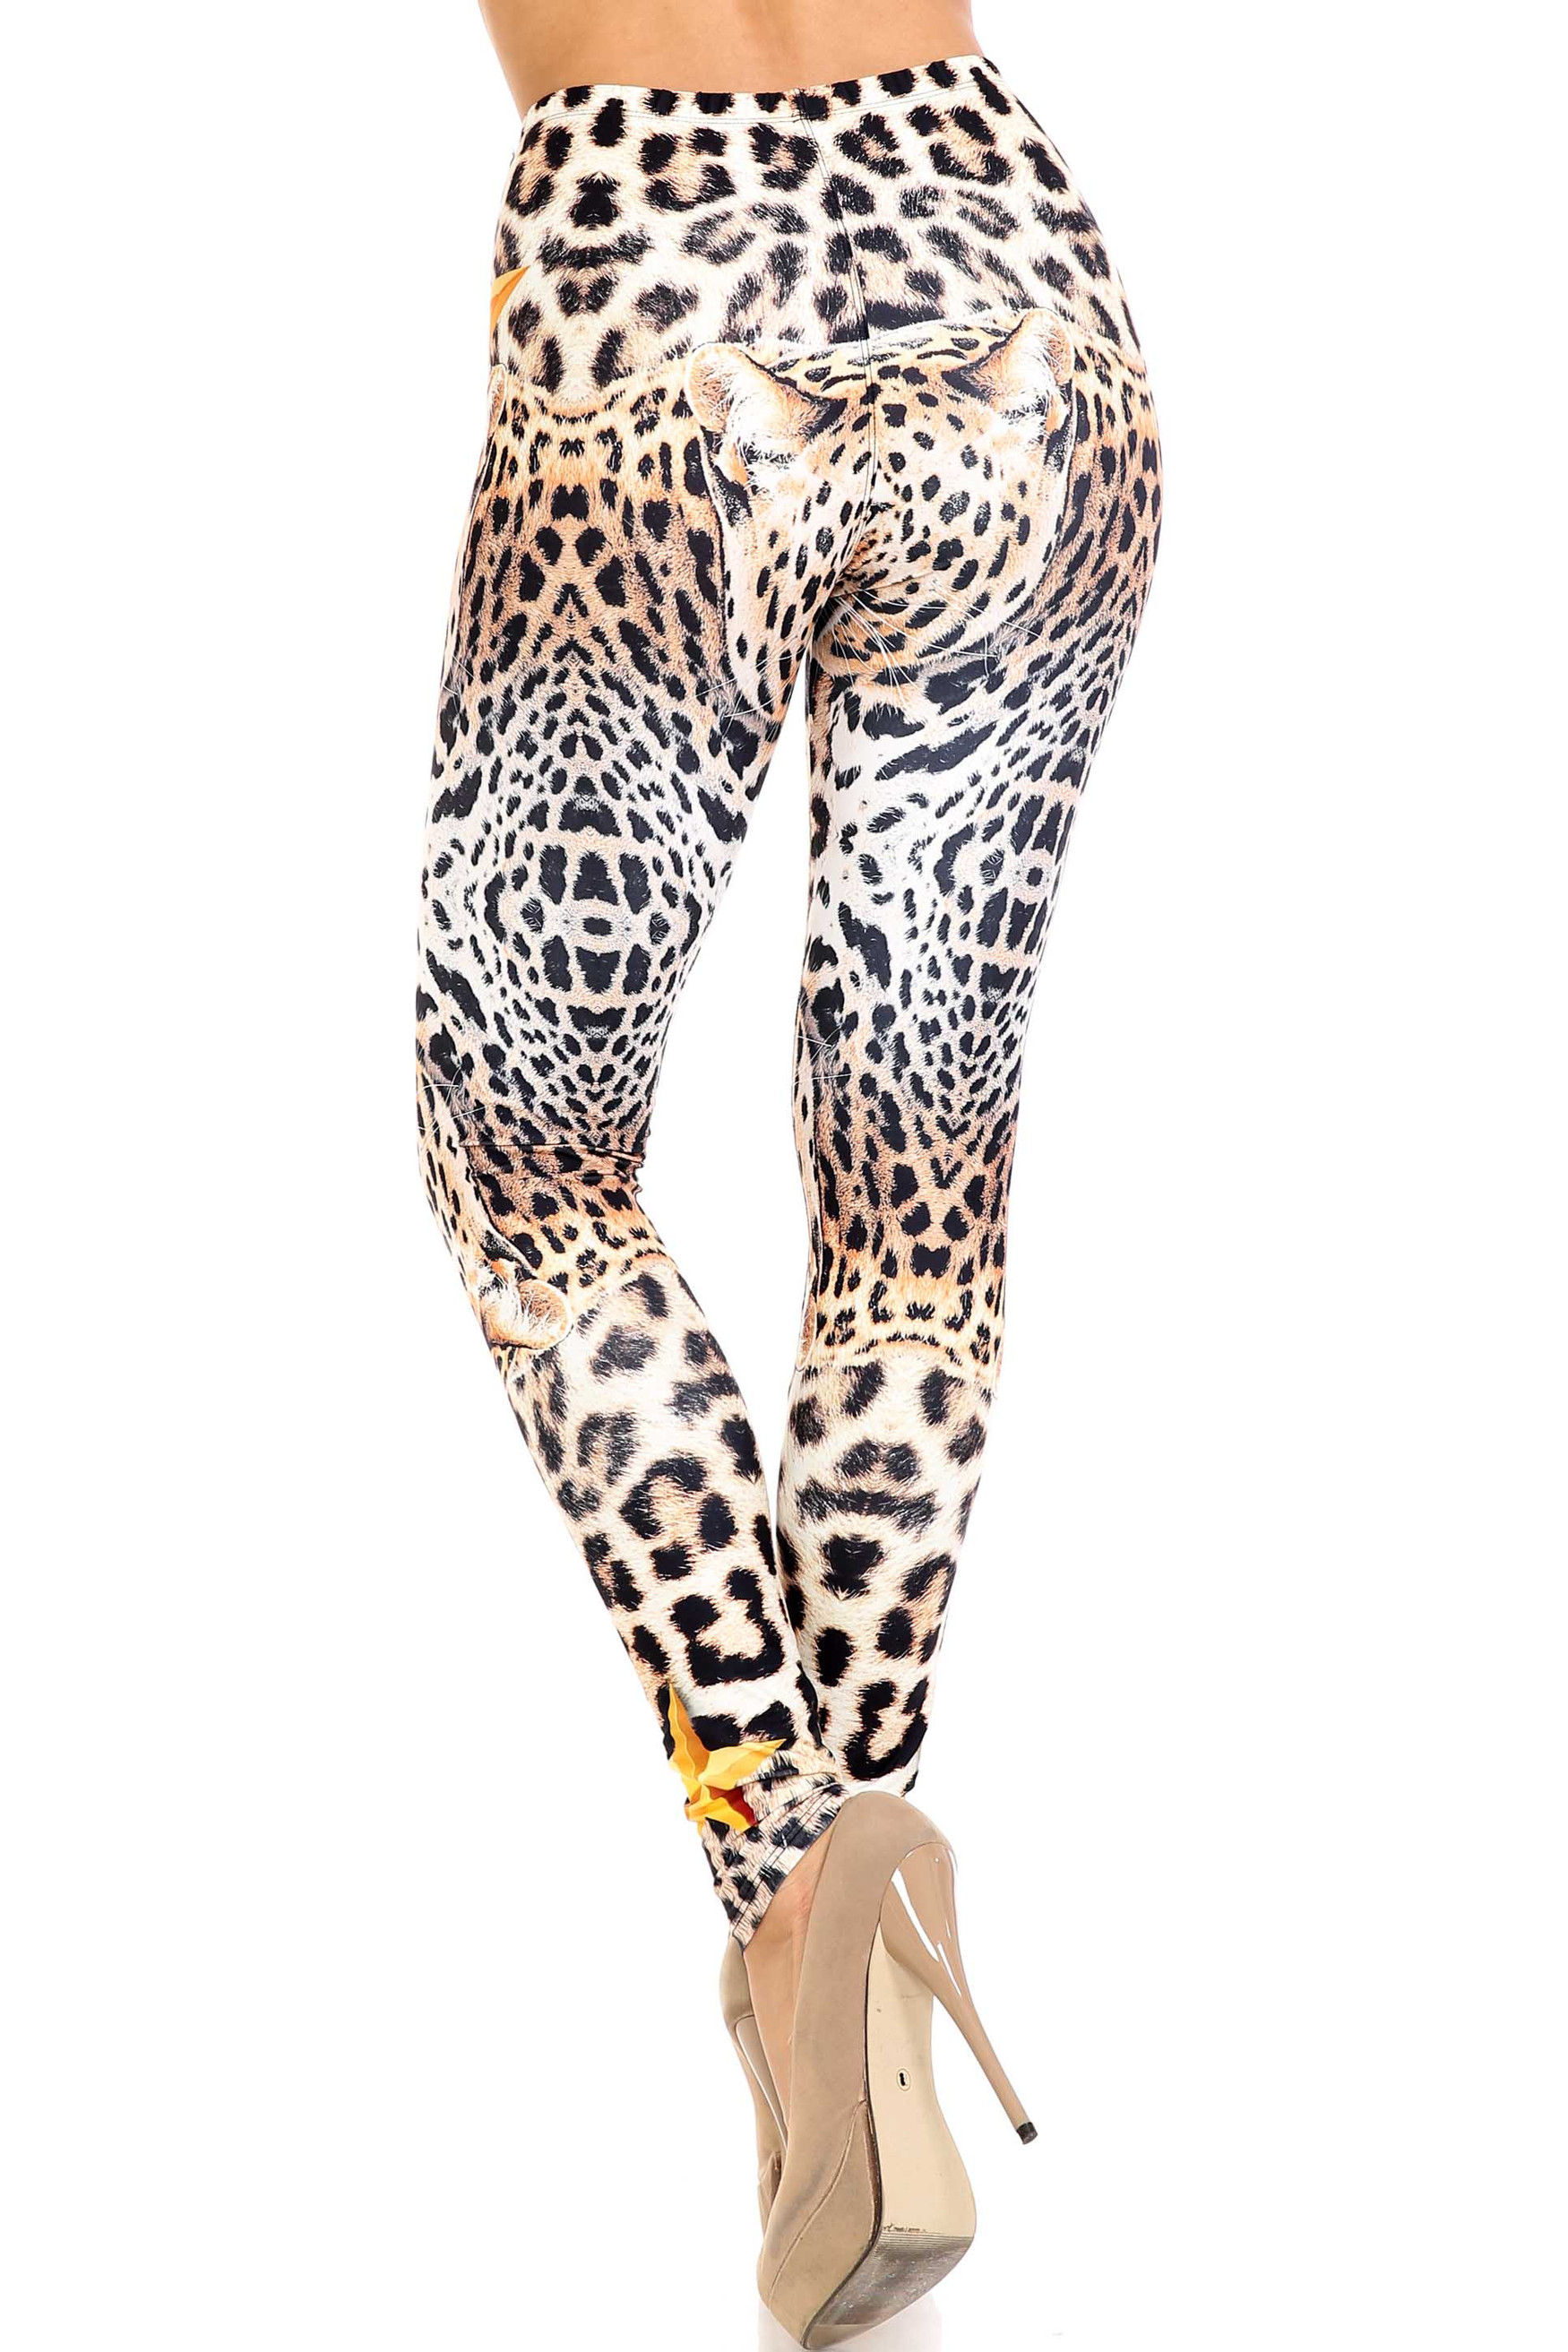 Creamy Soft Leopard Star Extra Plus Size Leggings - 3X-5X - USA Fashion™